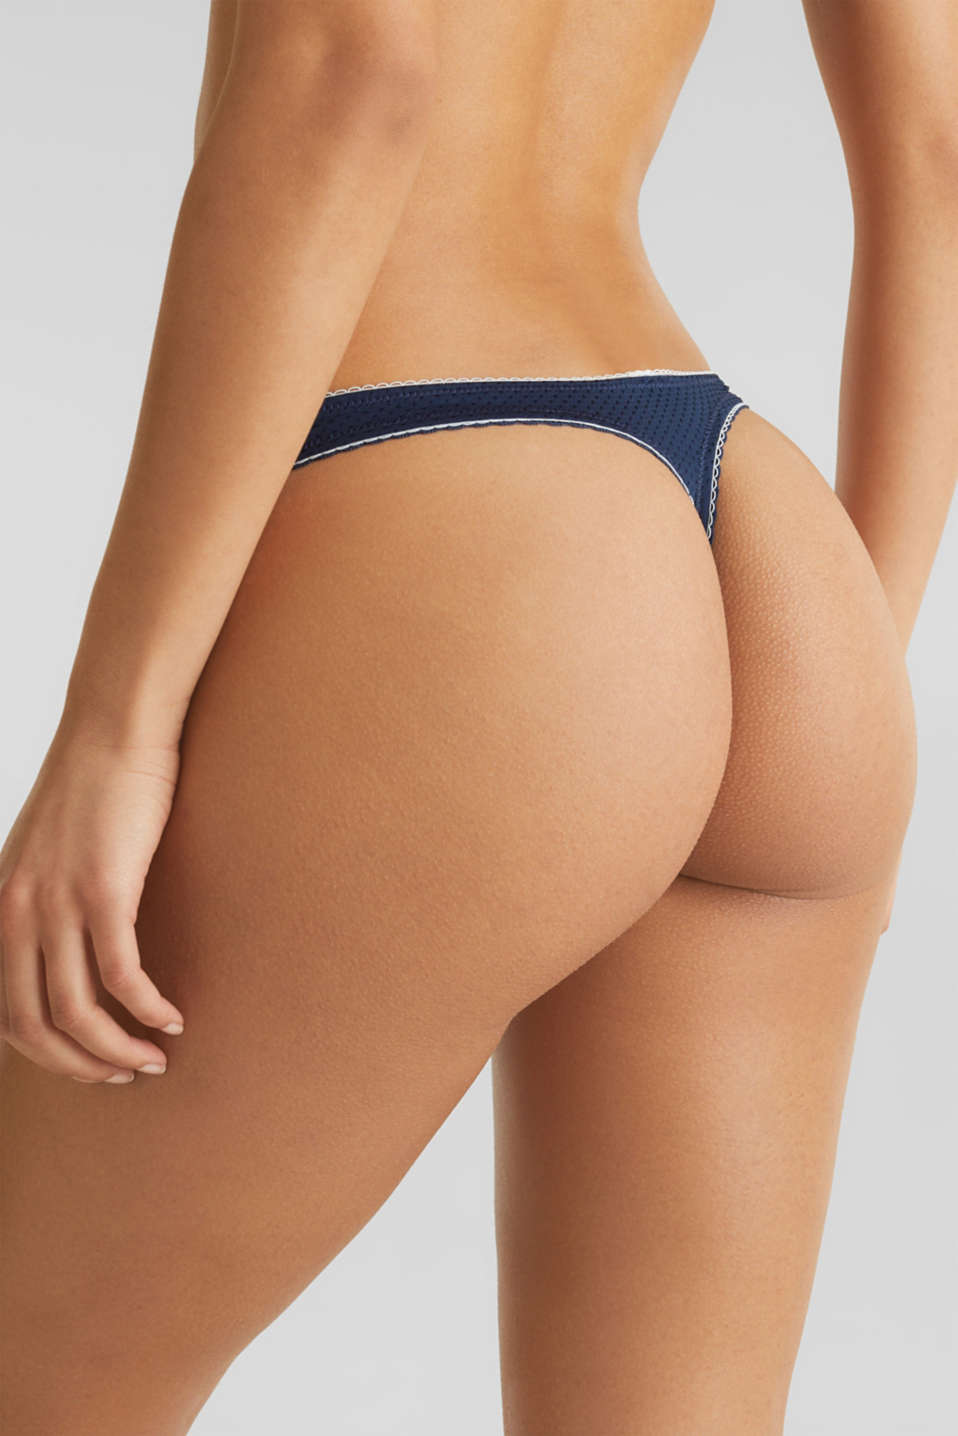 Hipster thong with a jacquard pattern, NAVY 2, detail image number 1